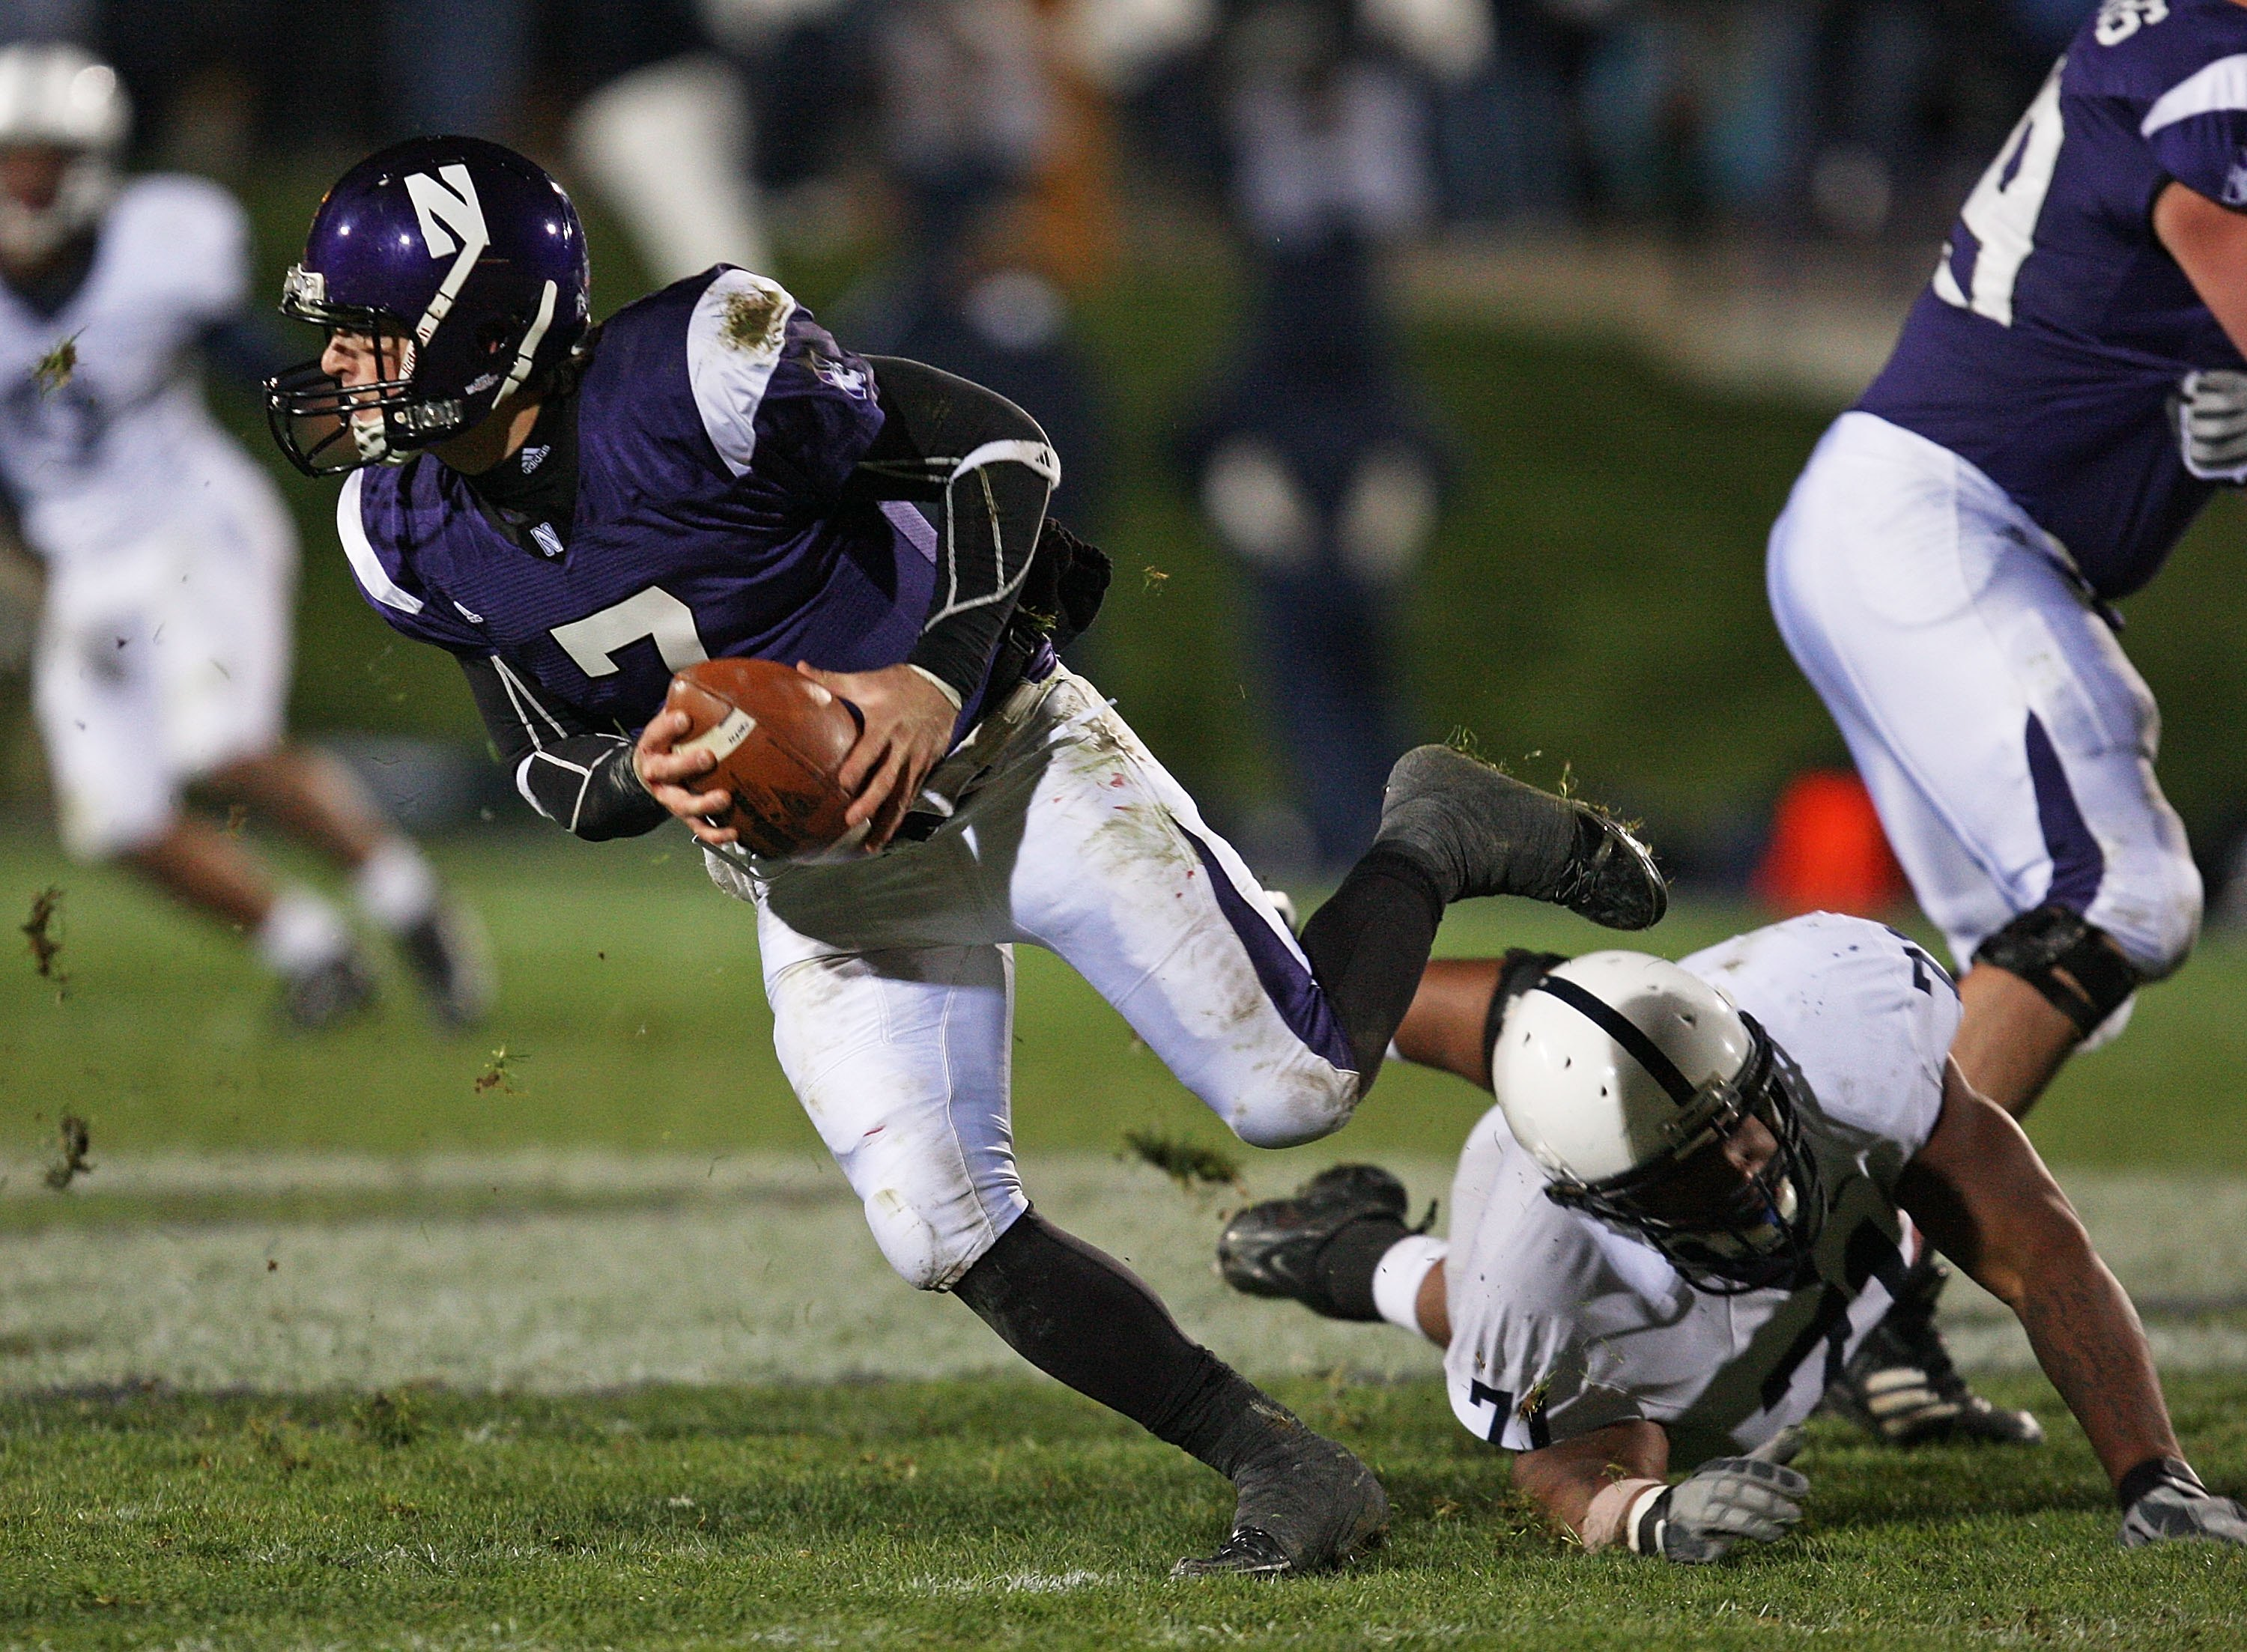 EVANSTON, IL - OCTOBER 31: Dan Persa #7 of the Northwestern Wildcats escapes from Devon Still #71 of the Penn State Nittany Lions at Ryan Field on October 31, 2009 in Evanston, Illinois. Penn State defeated Northwestern 34-13. (Photo by Jonathan Daniel/Ge